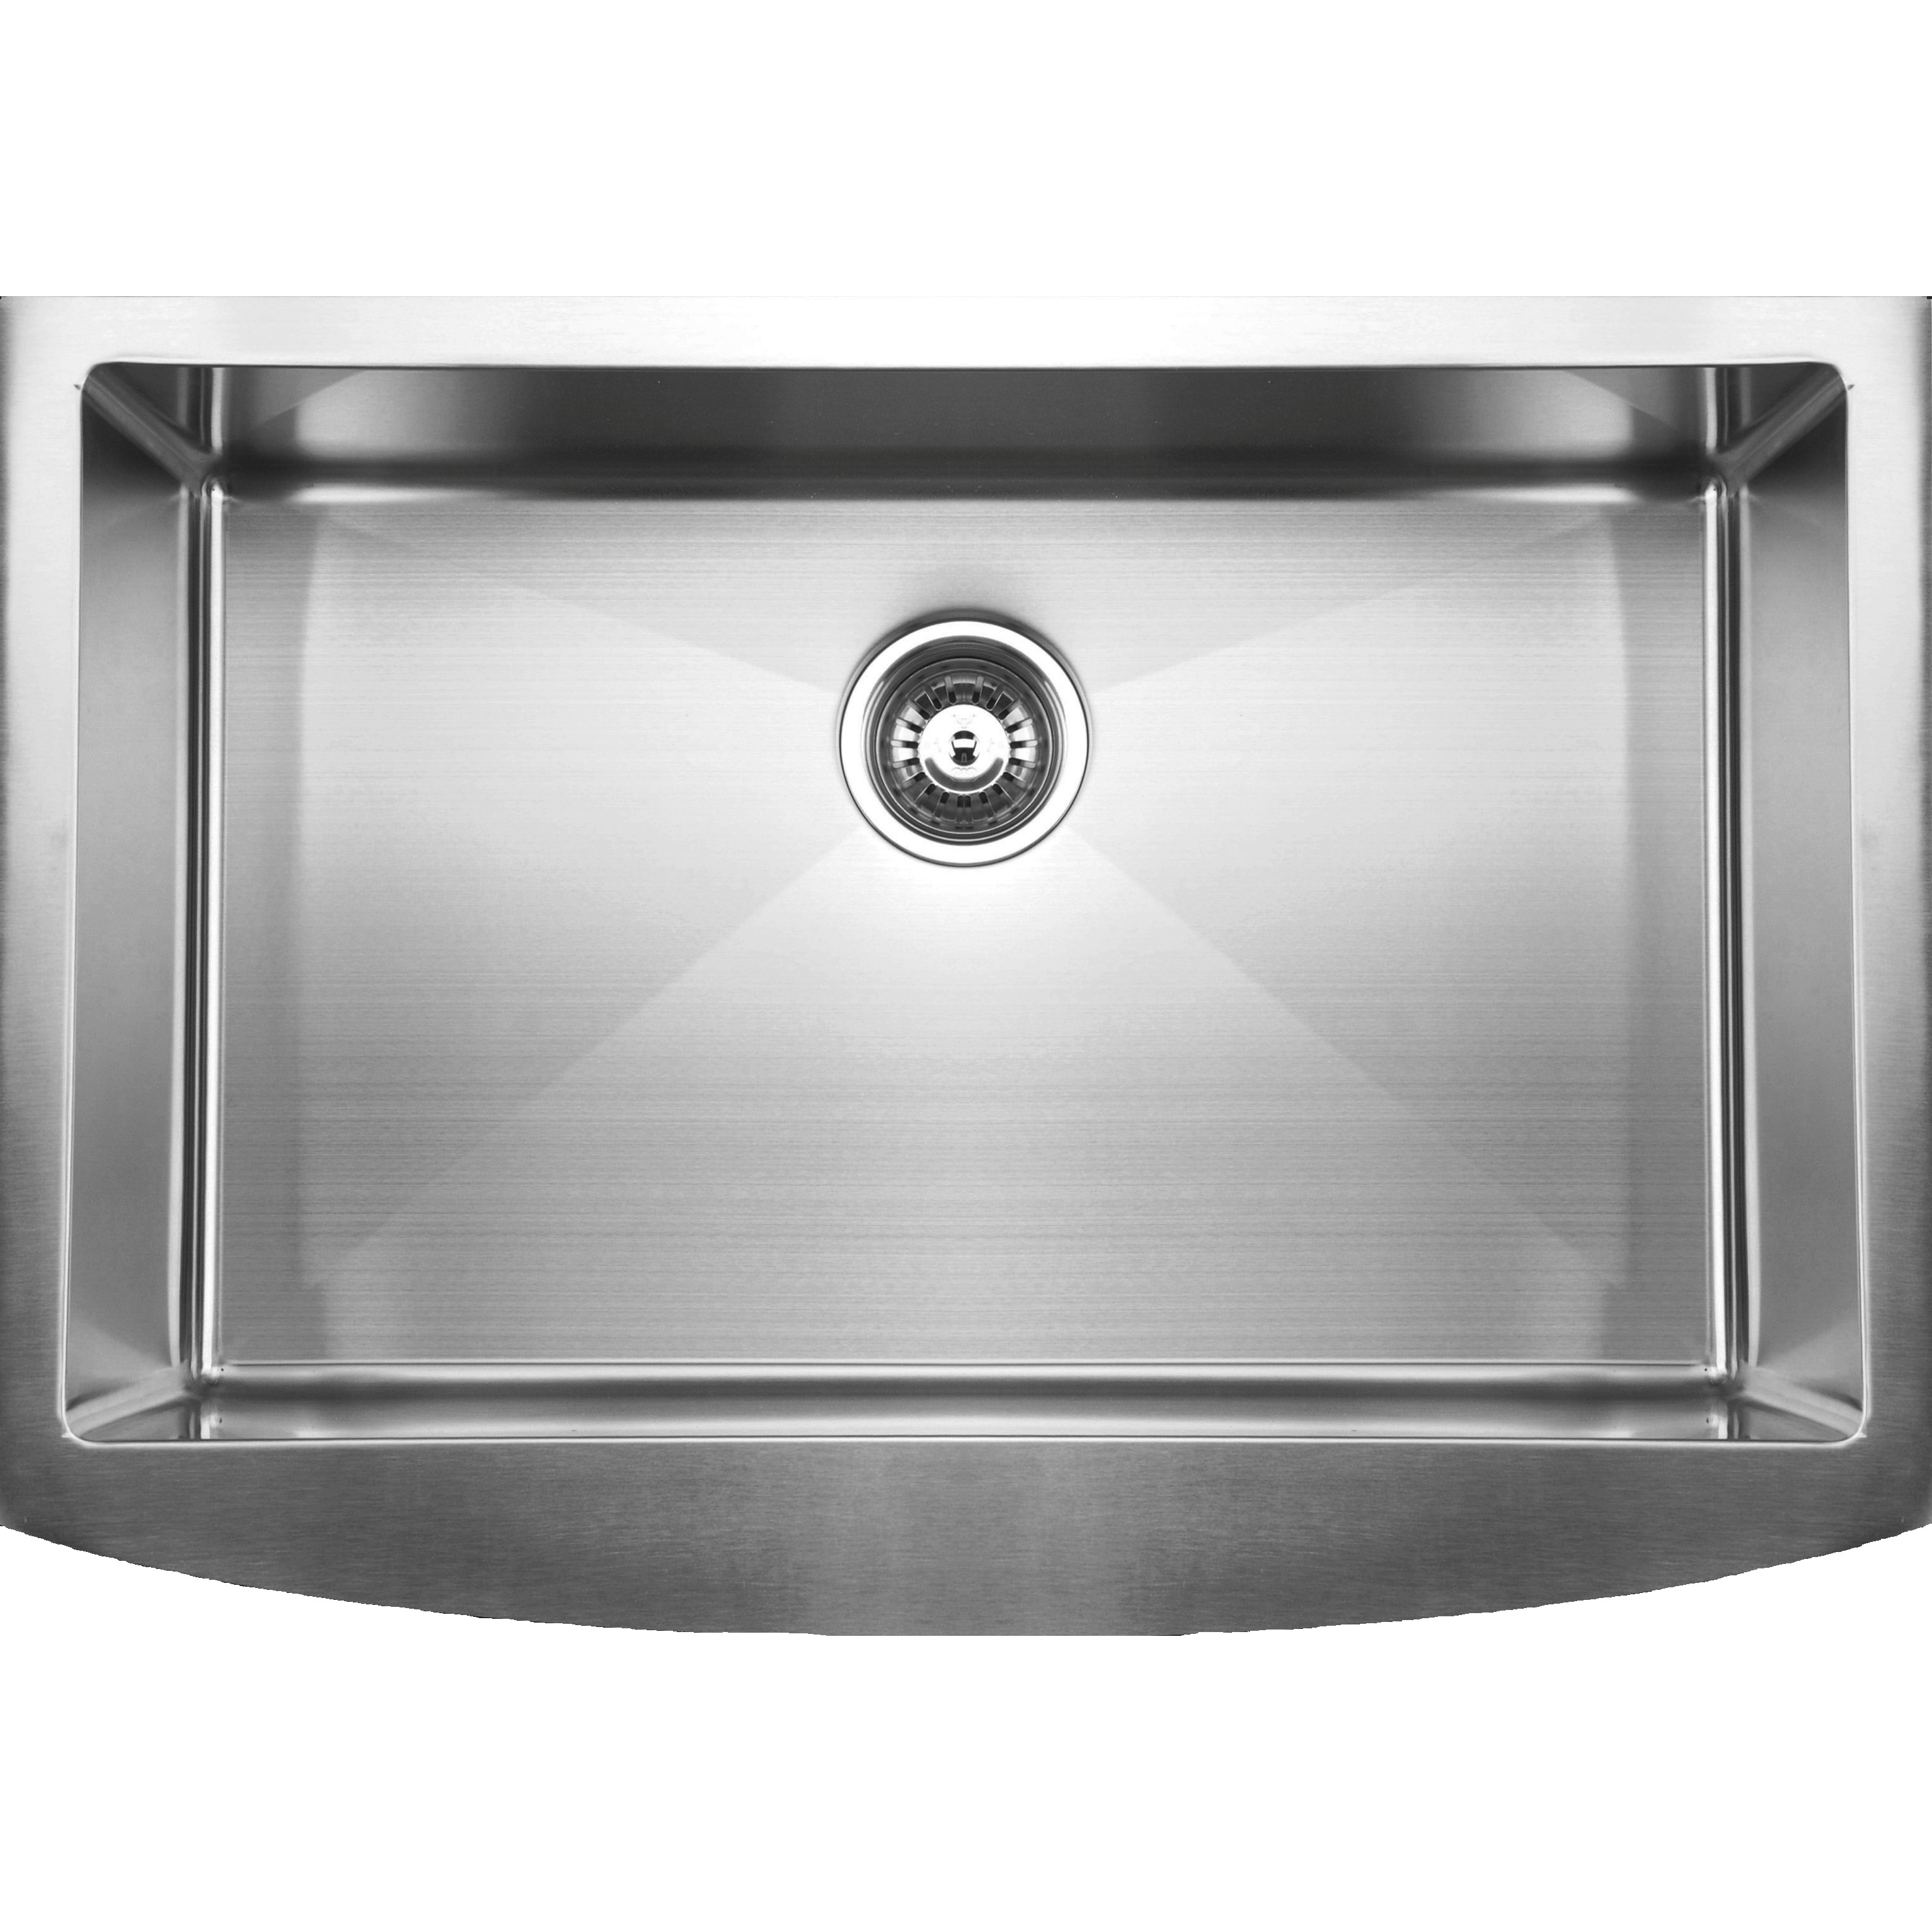 ... RSFC849 Apron Front Single Bowl Stainless Steel Kitchen Sink eBay